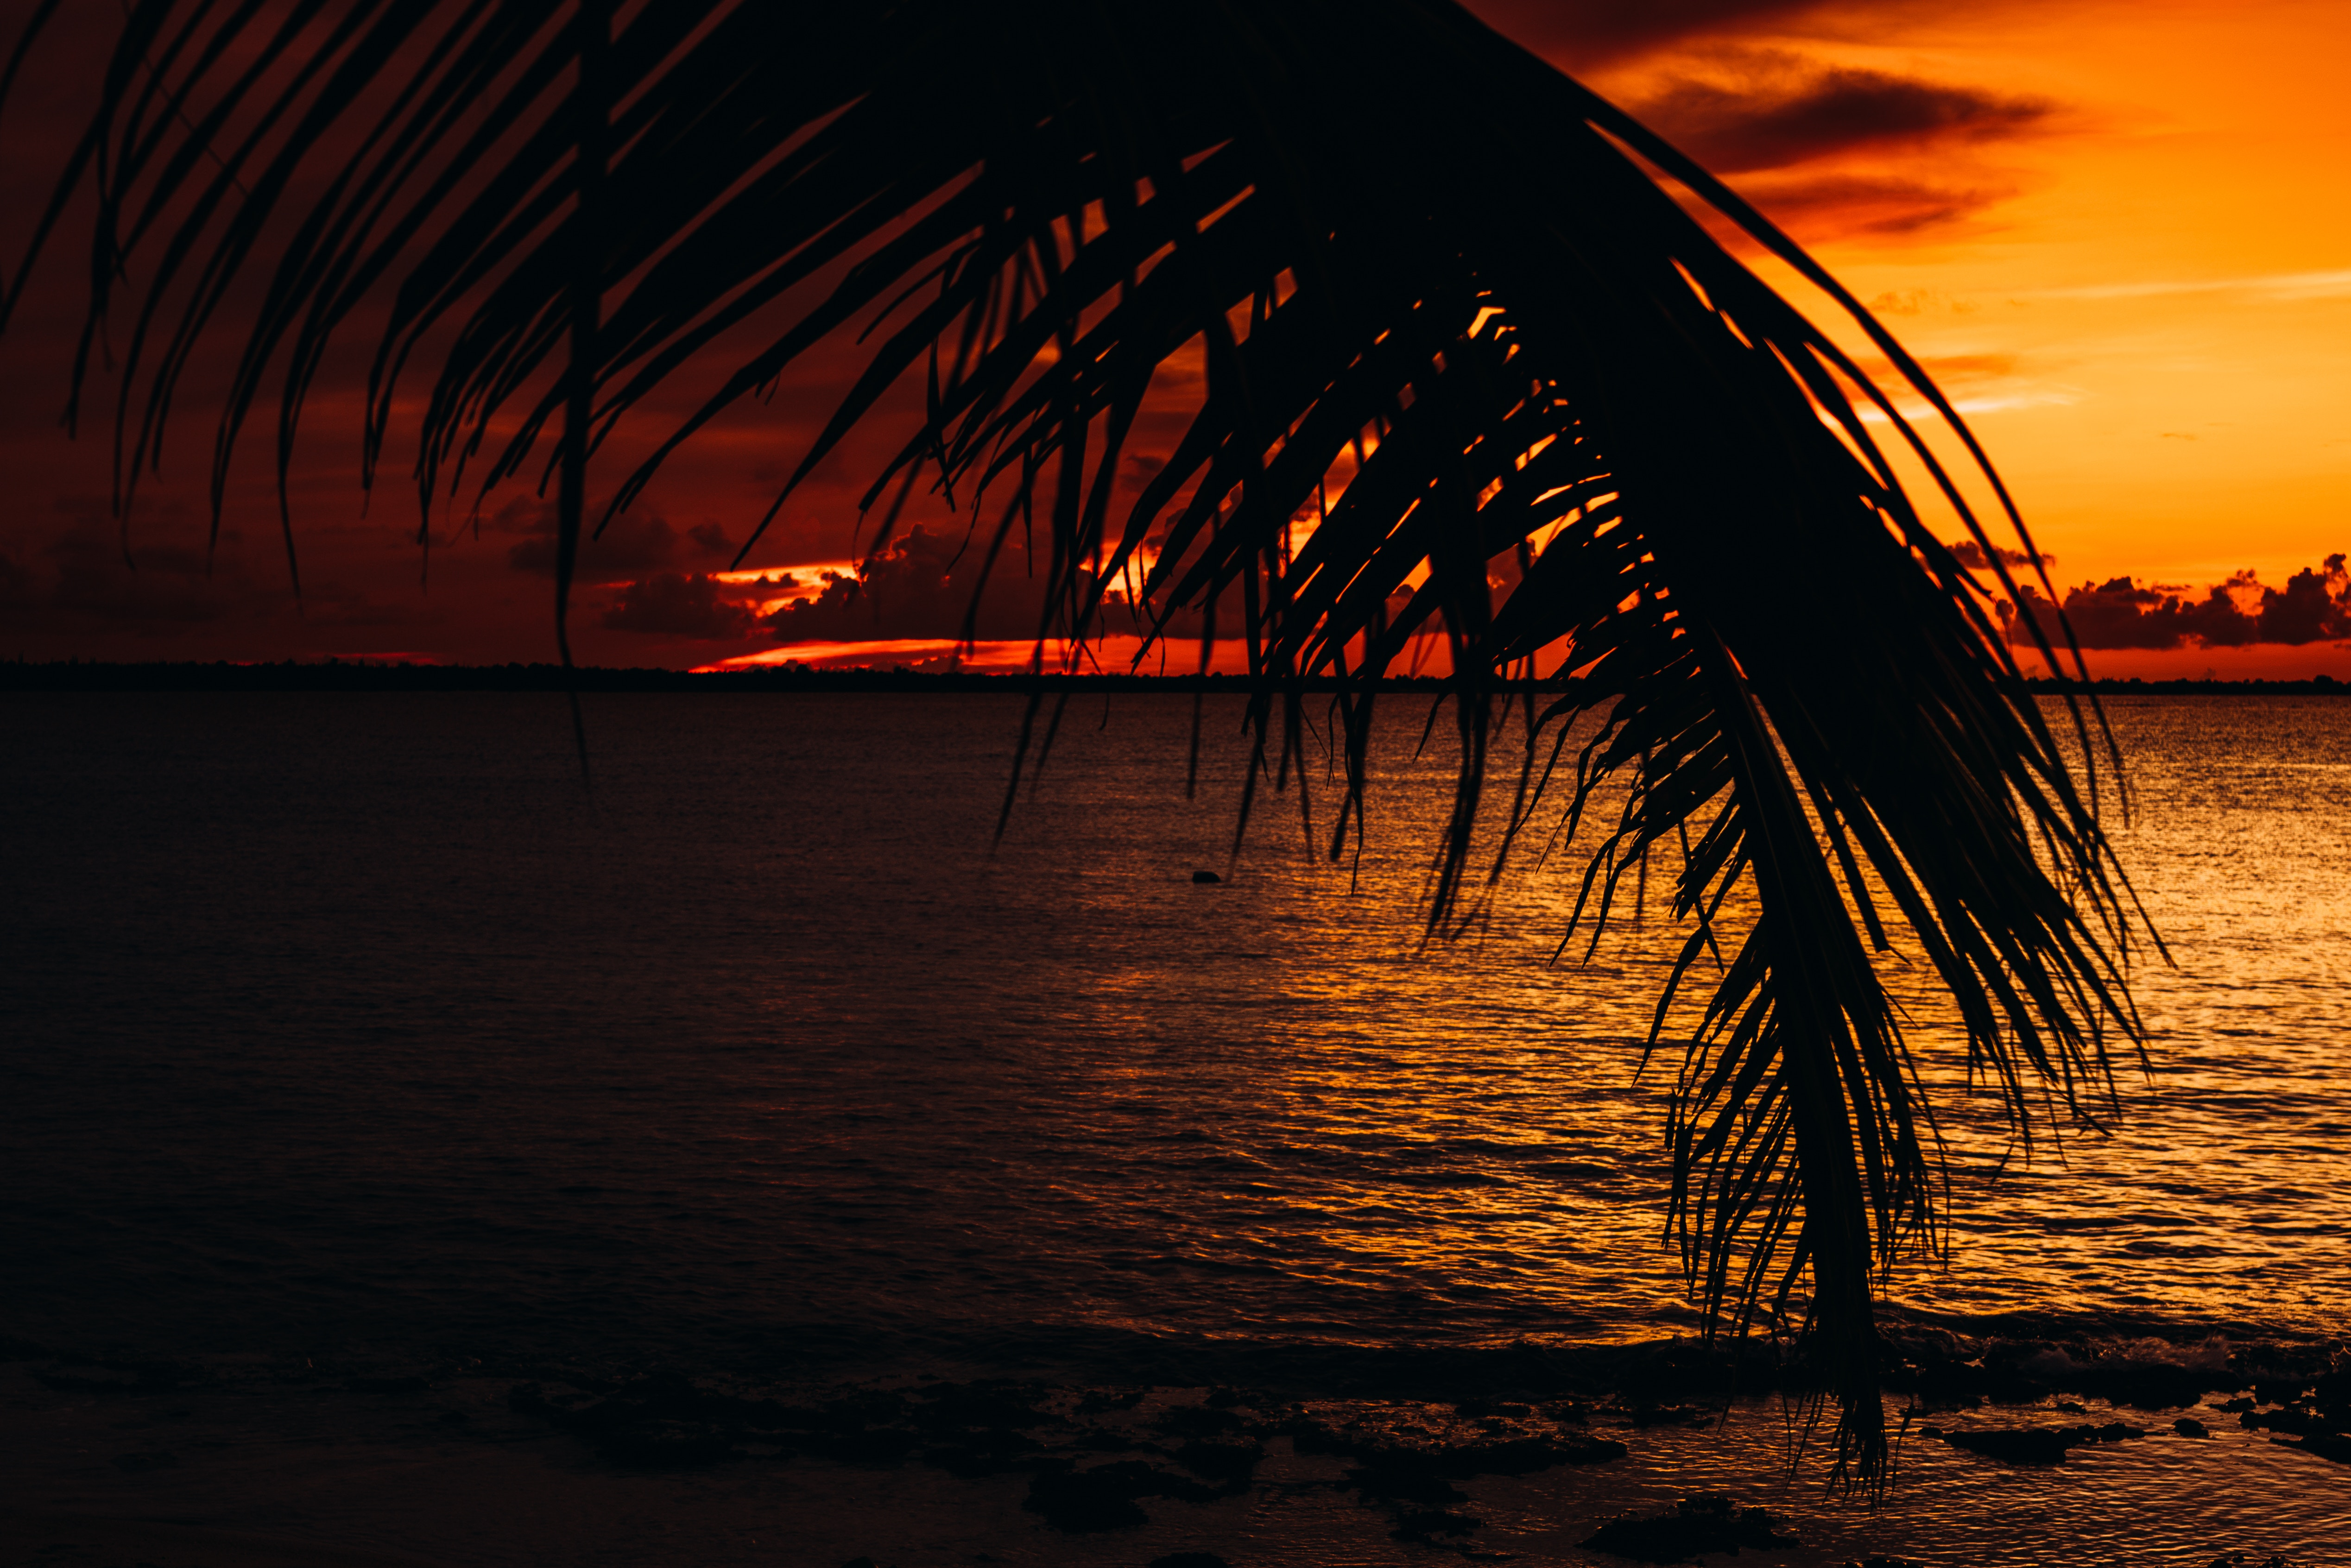 94034 download wallpaper Sunset, Sea, Twilight, Dark, Palm, Dusk screensavers and pictures for free